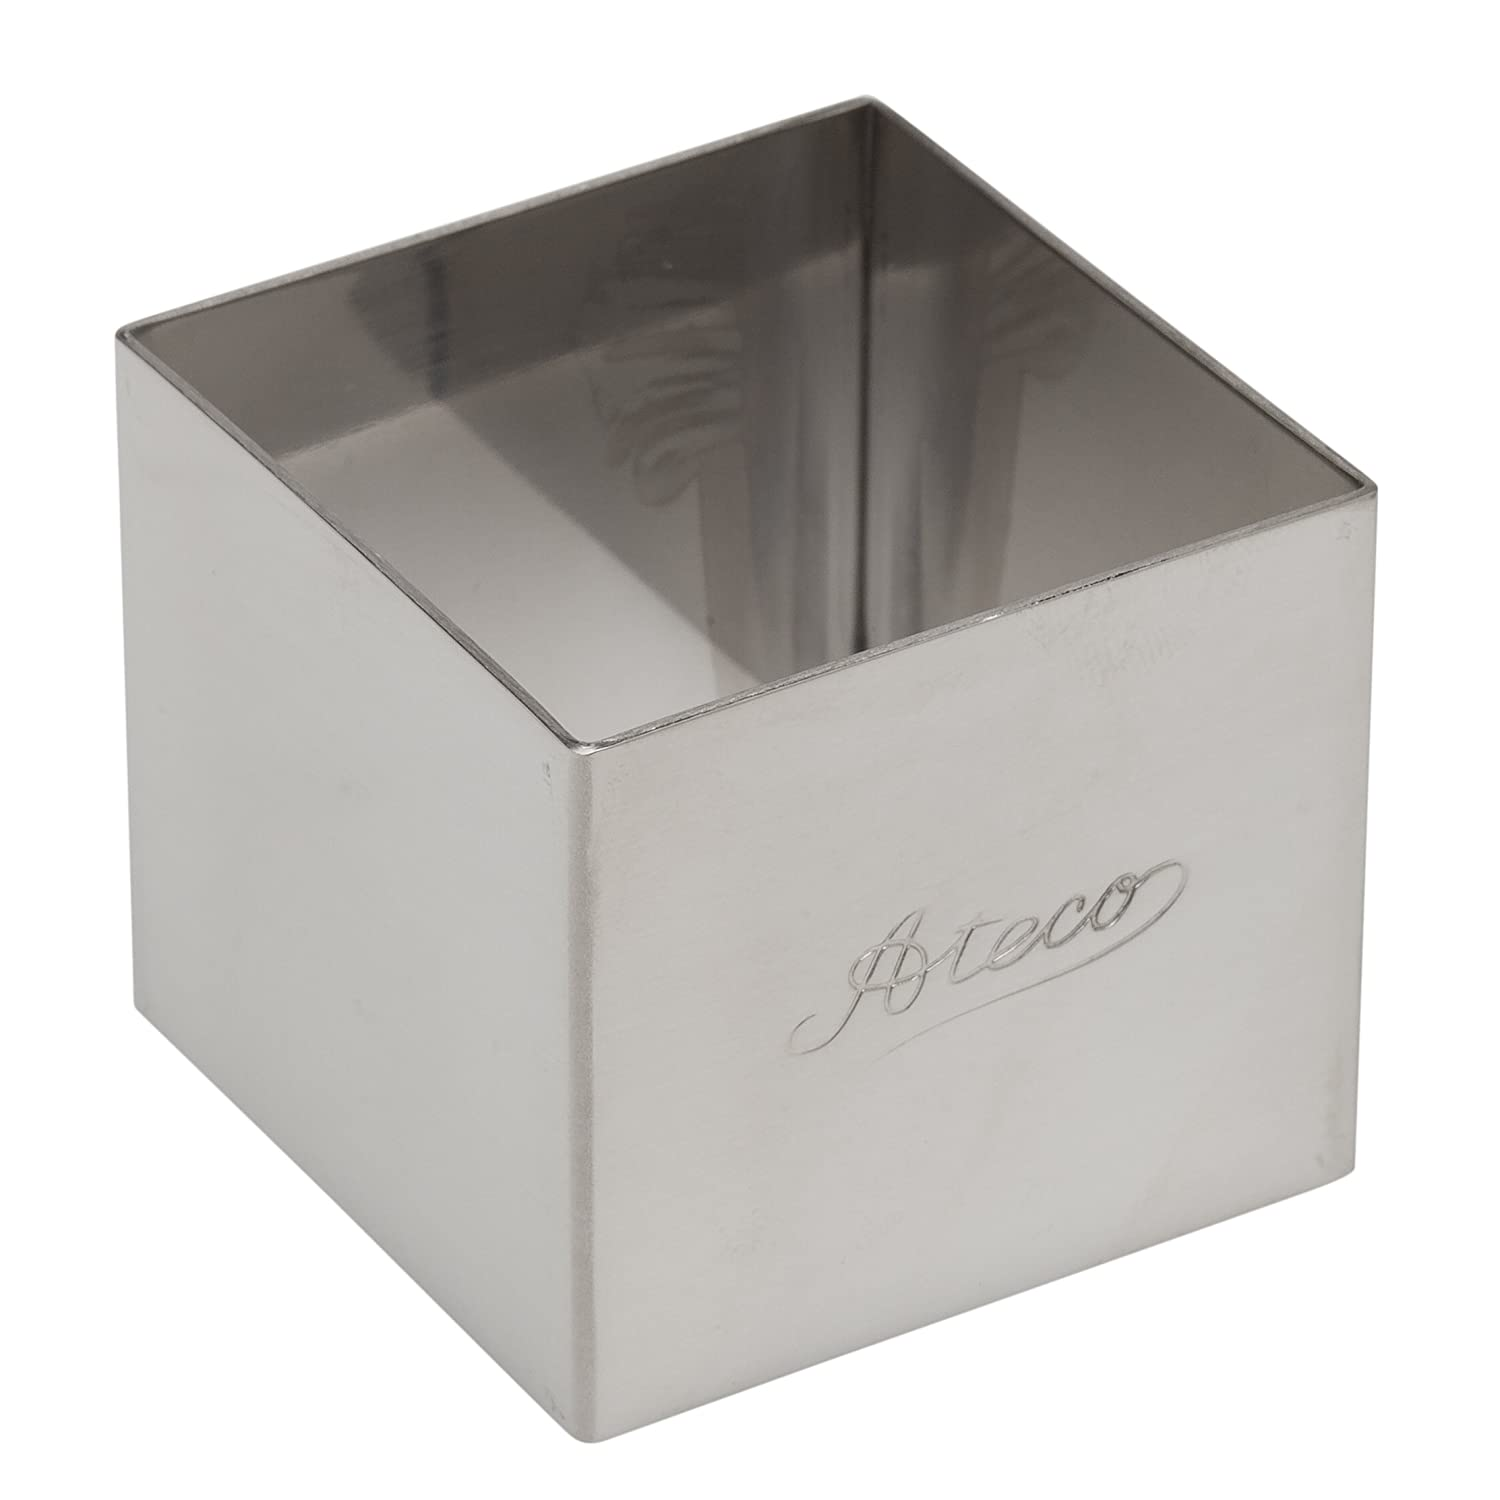 Ateco 4905 Stainless Steel Square Form, 2-Inch by 1.75-Inch